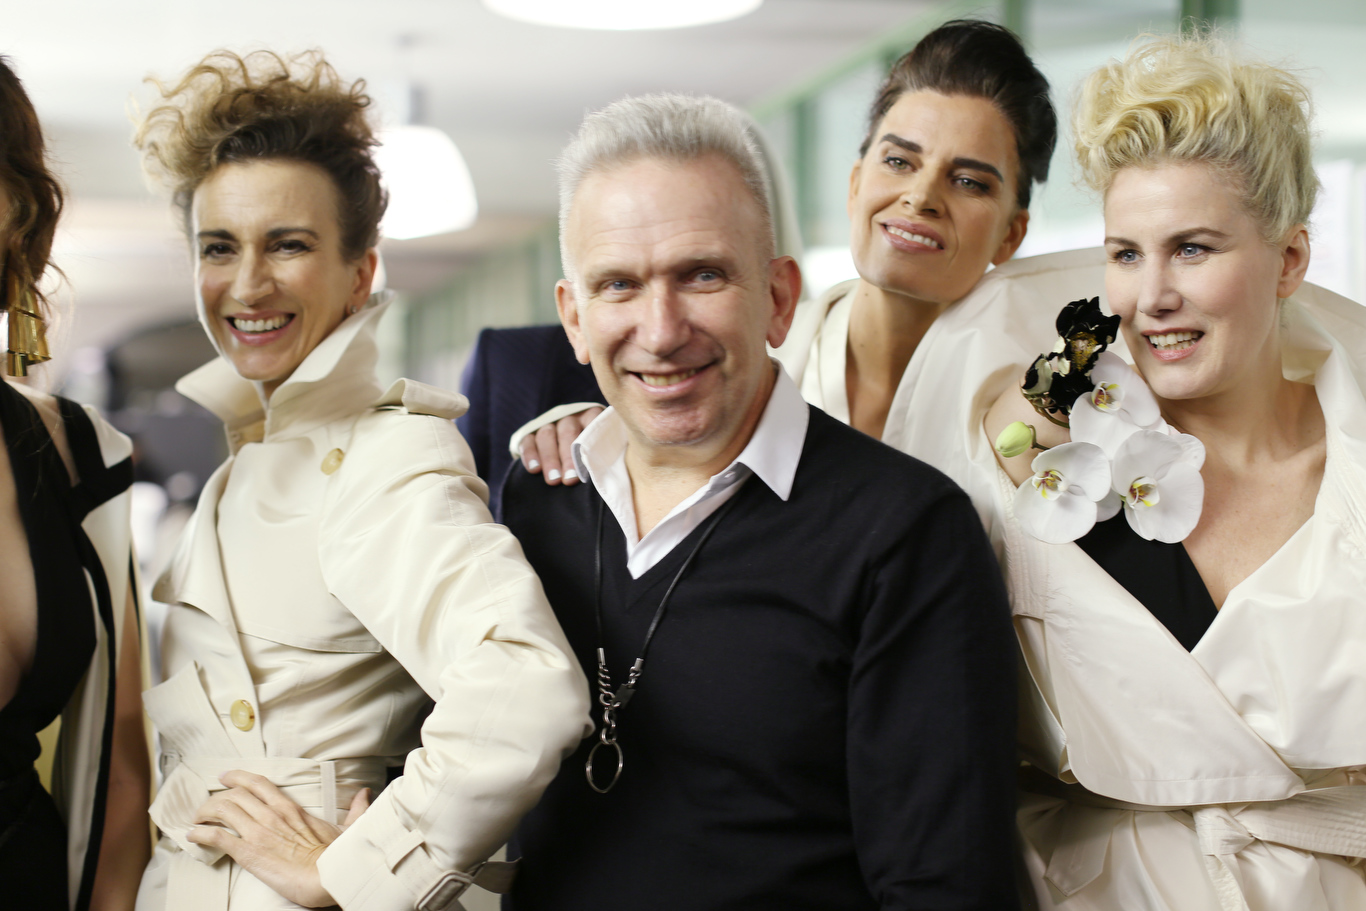 Fashion designer Jean Paul Gaultier at his spring 2015 haute couture show.